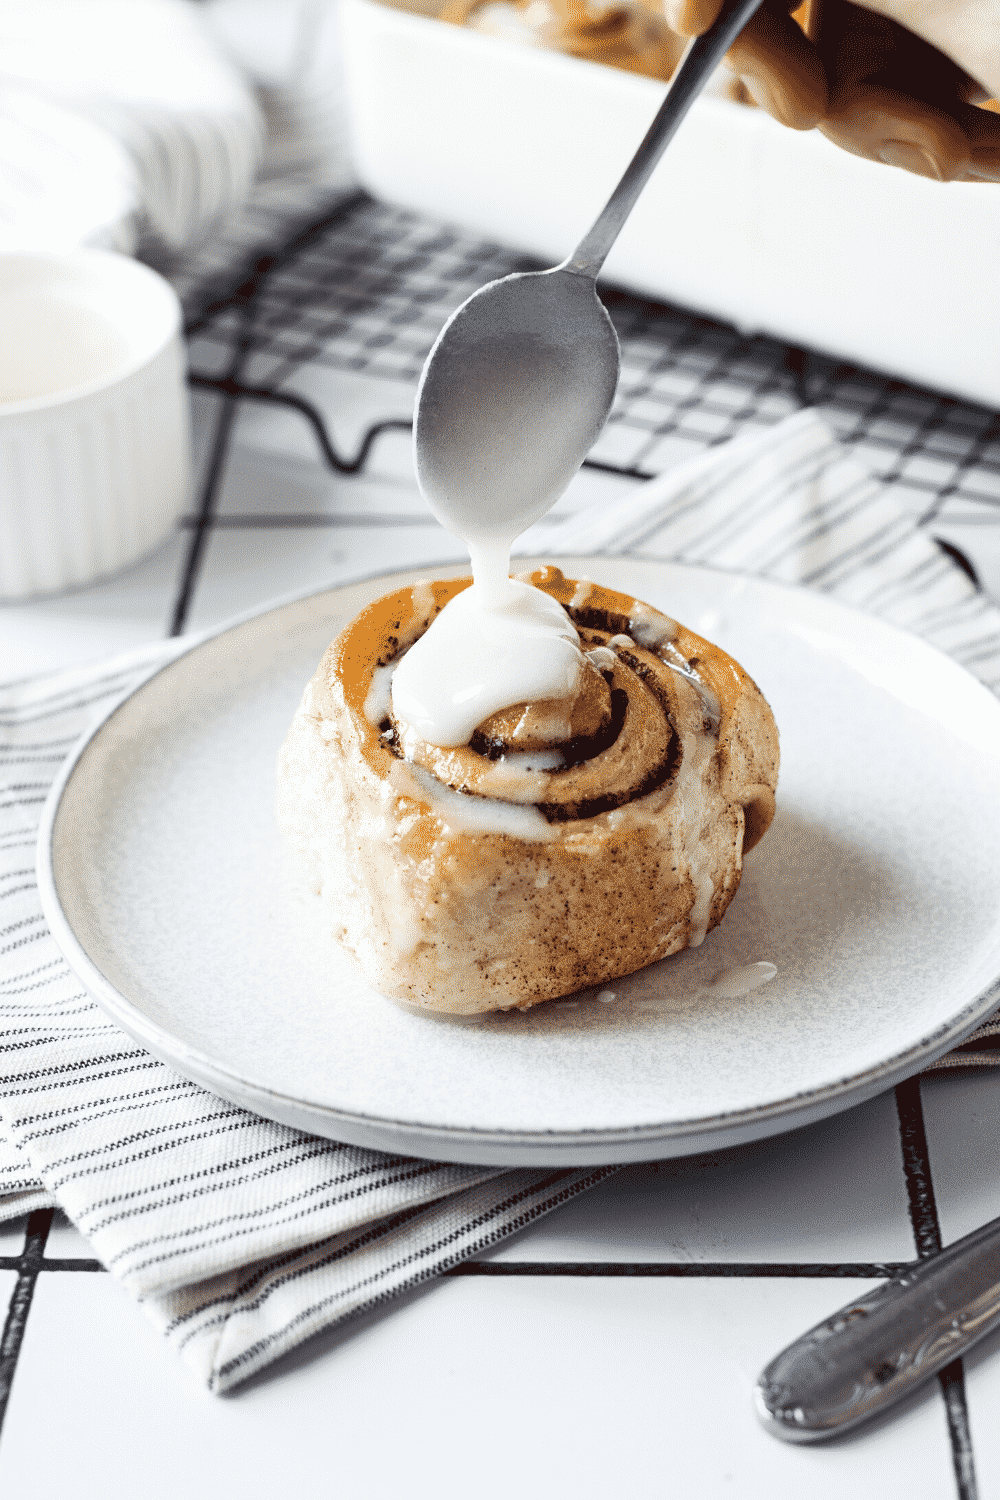 A white plate with a cinnamon roll on it. A spoon is hovering over the cinnamon roll drizzling icing on top.